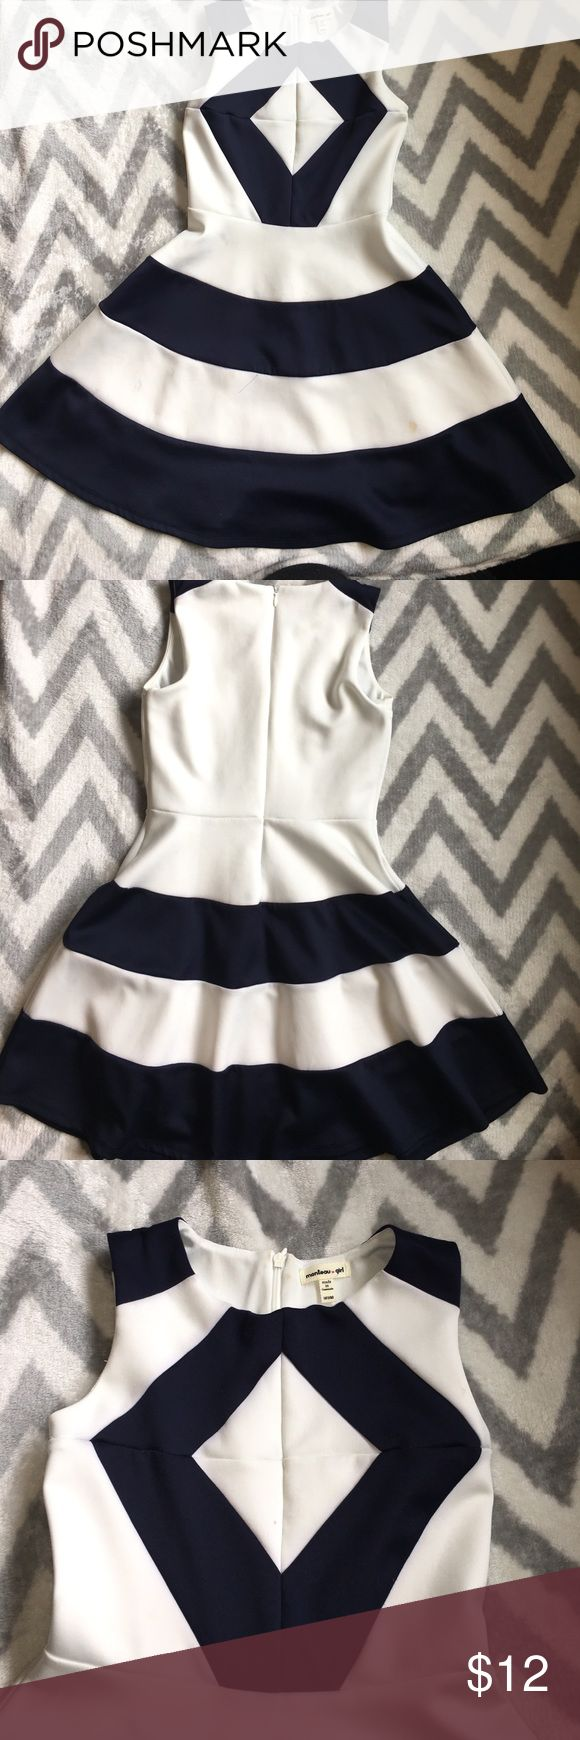 Beautiful Navy and White dress girls sz 10 Bought at Nordstrom Brand: Monteau girl size 10... Navy and White striped dress. The fit of this is perfect...tucks in at the waist and slight bell. Bought it for a wedding and everyone complimented my little one:) only worn 2-3 times. Small stain in picture.(I haven't really tried to get it out, so it could come right out) Nordstrom Dresses